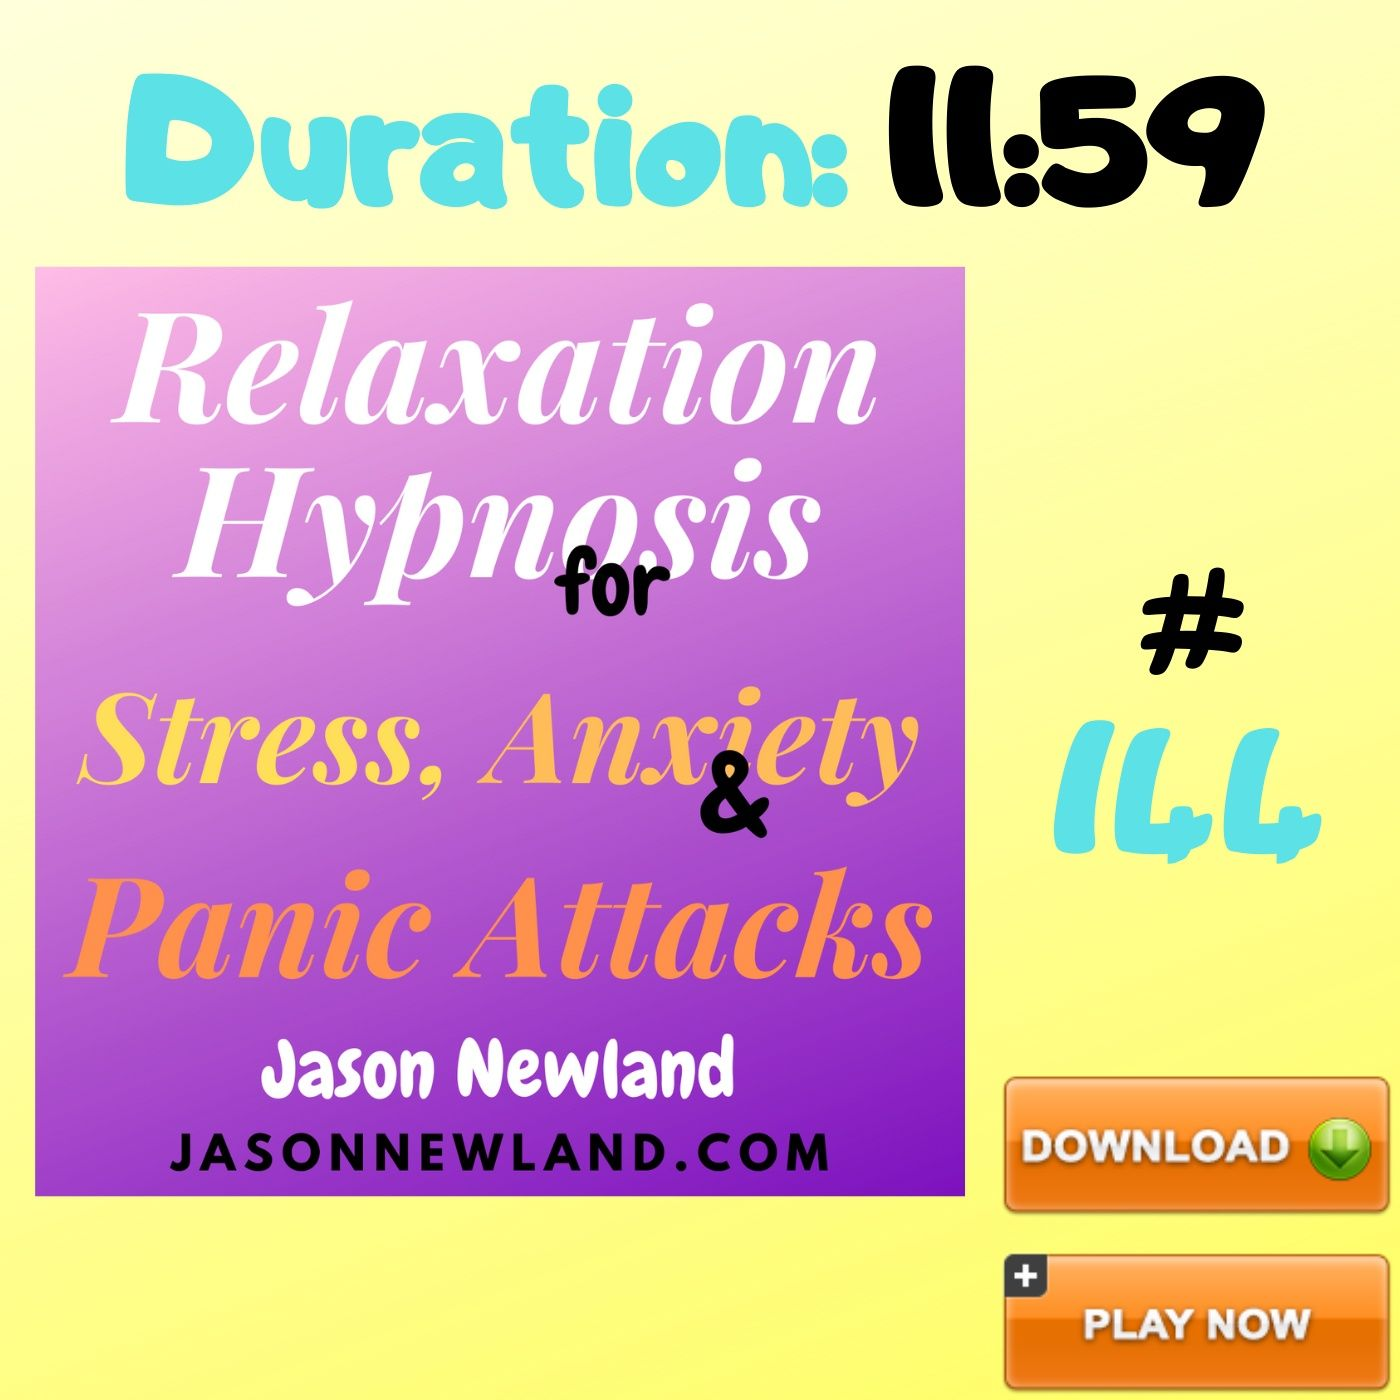 "#144 Relaxation Hypnosis for Stress, Anxiety & Panic Attacks - ""STRESS VS LOVE"" (Jason Newland) (1st June 2020)"